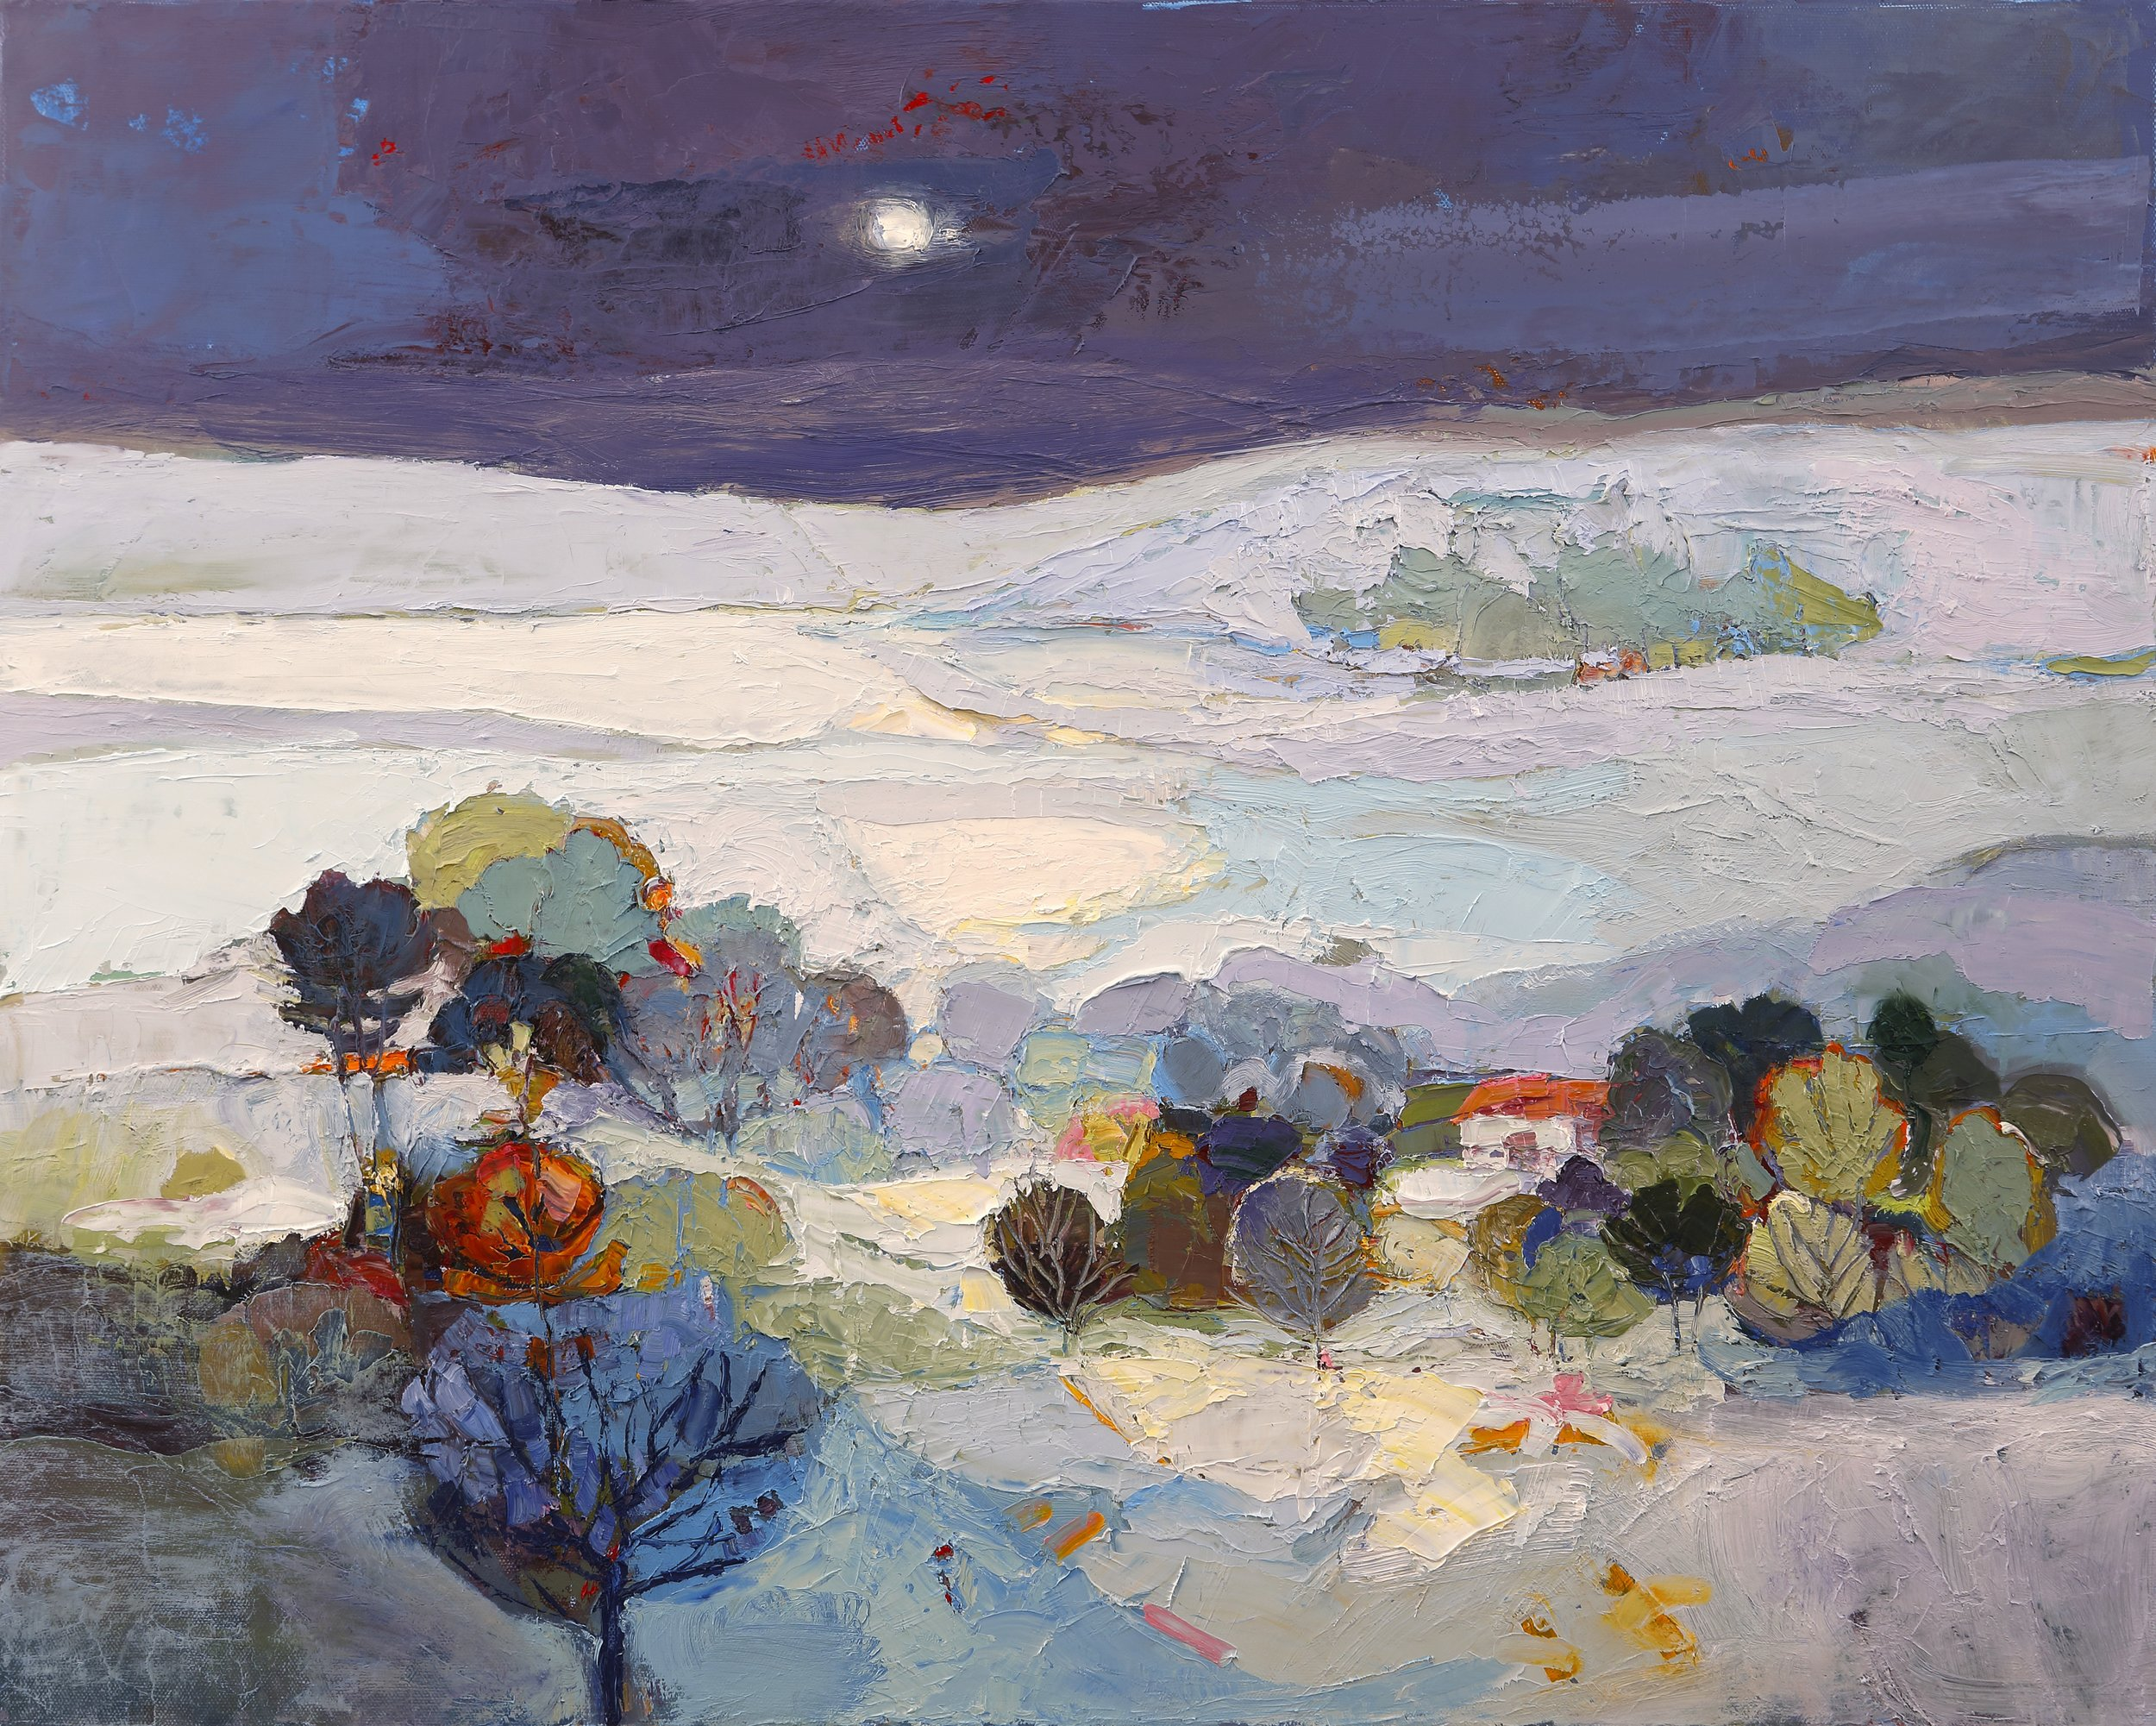 Title: Light on the Land Size: 24 x 30 inches Medium: Oil on Canvas Price: £4700